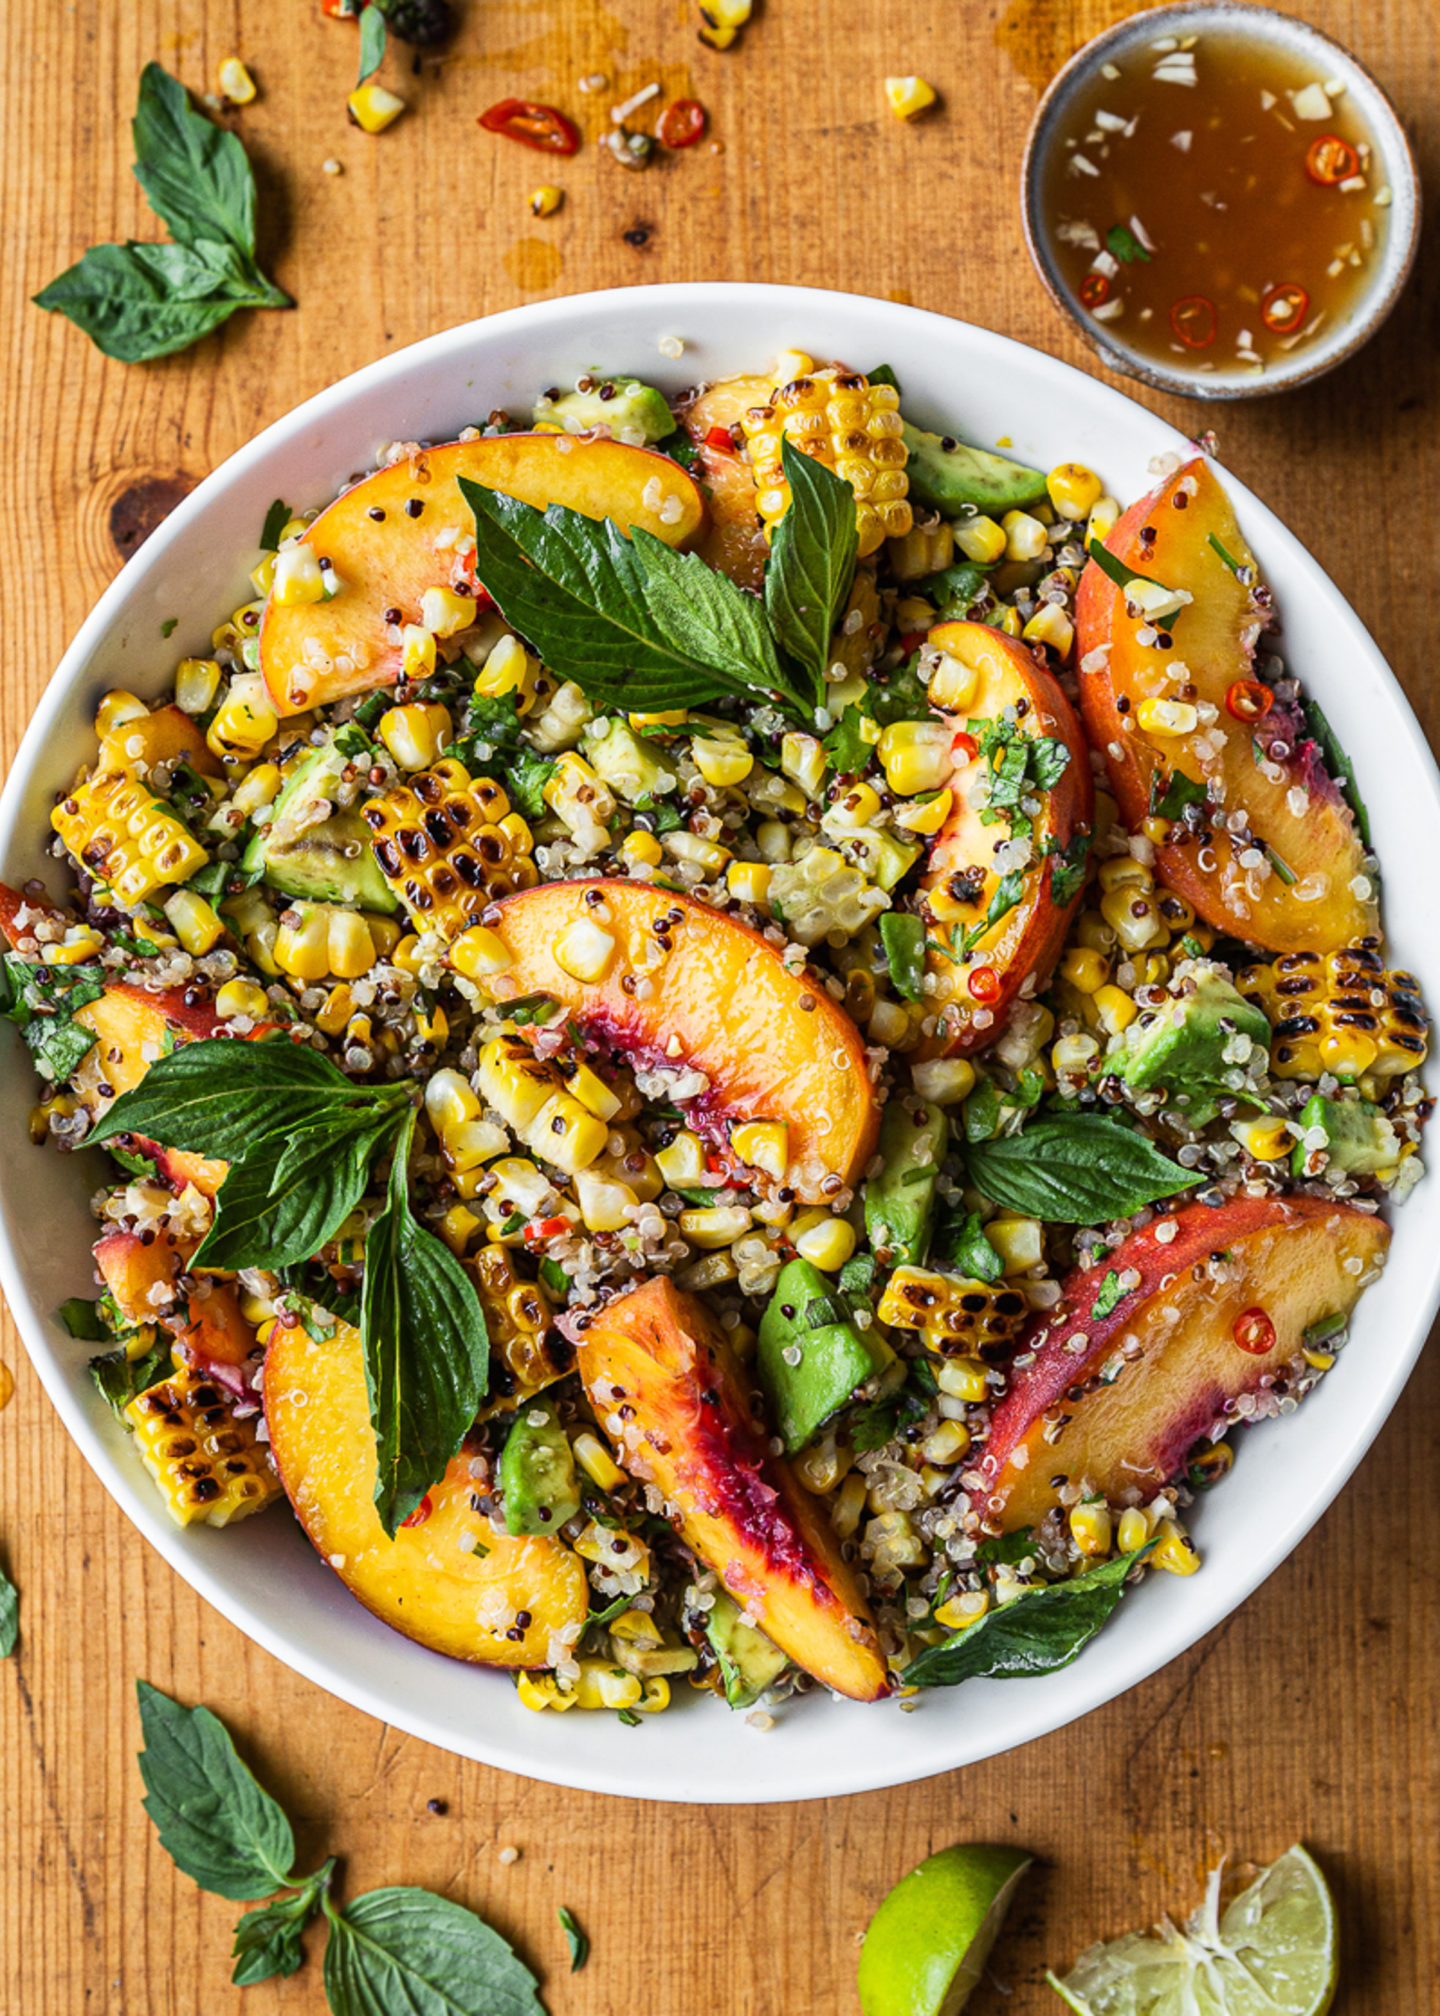 Charred Corn, Peach Salad with Quinoa and Nuoc Cham